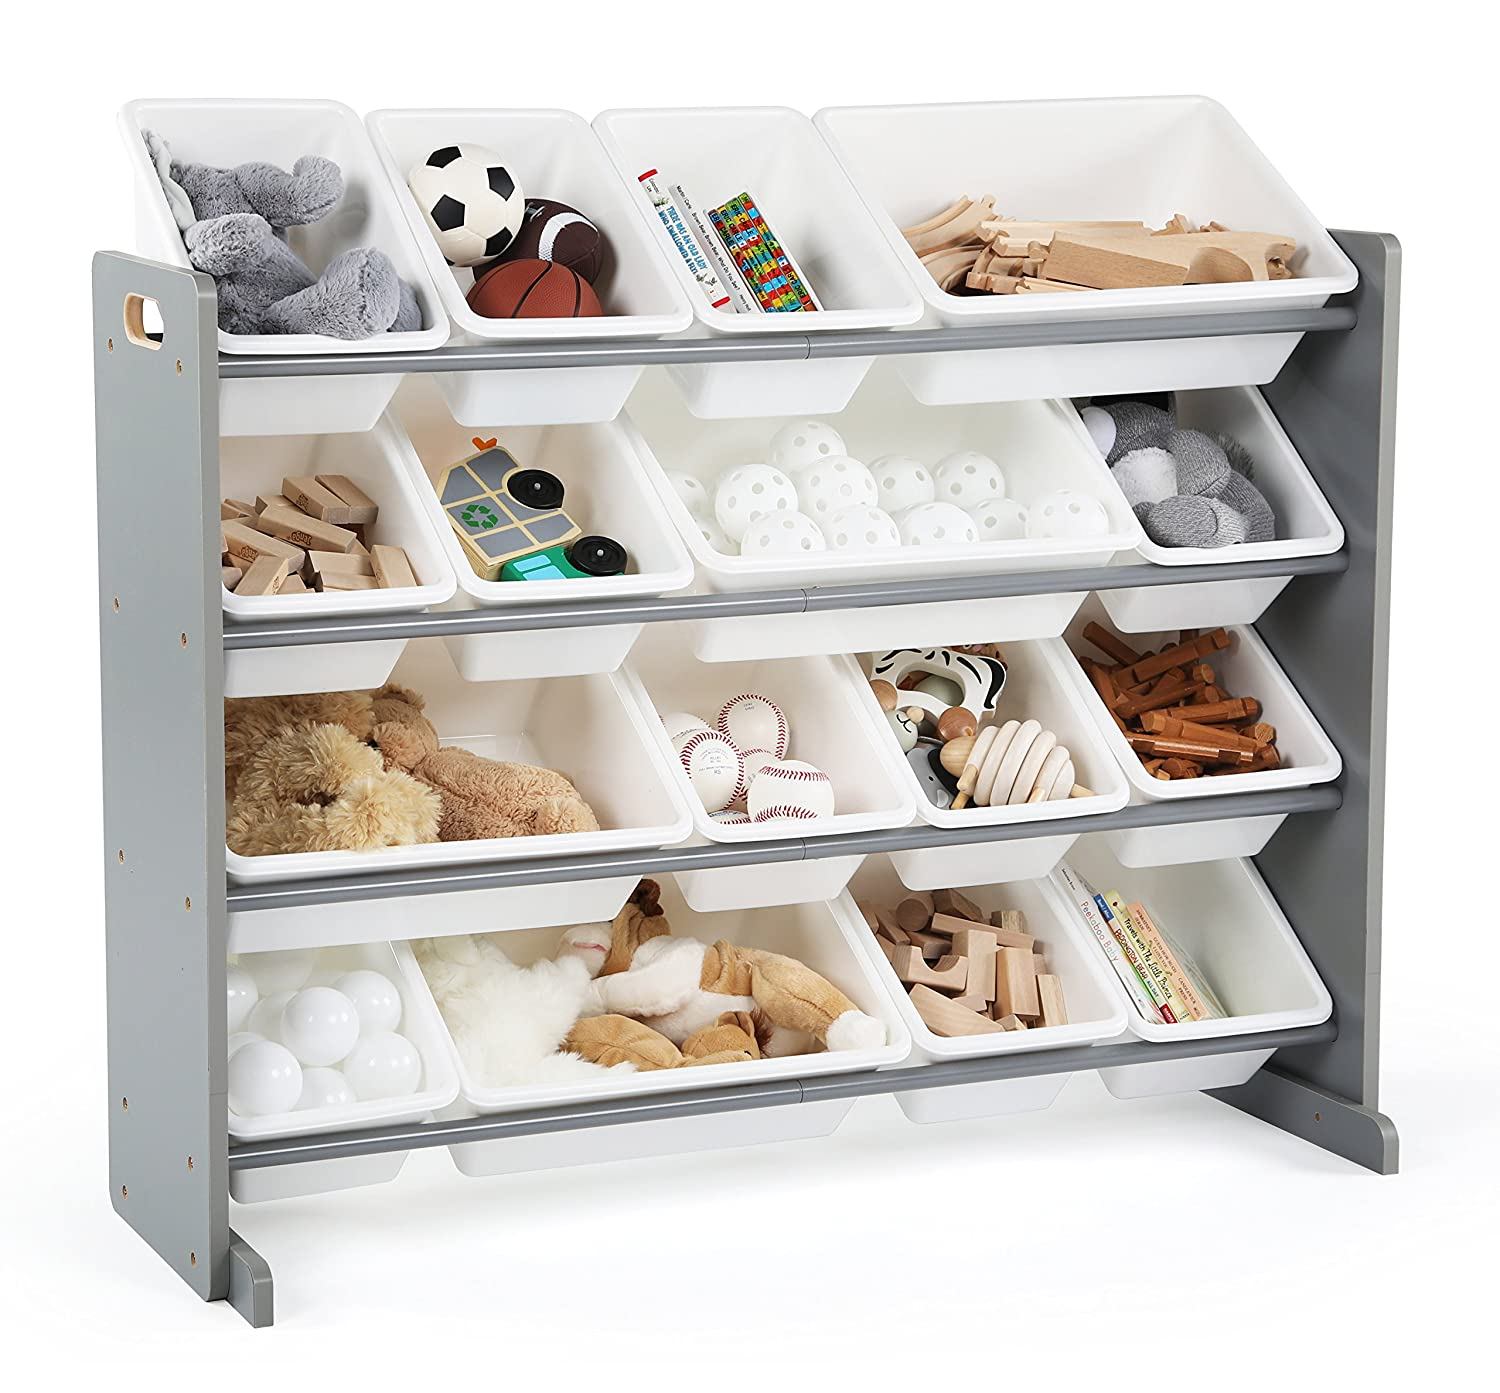 Tot Tutors WO701 Springfield Collection Supersized Wood Toy Storage Organizer Extra Large Grey/White